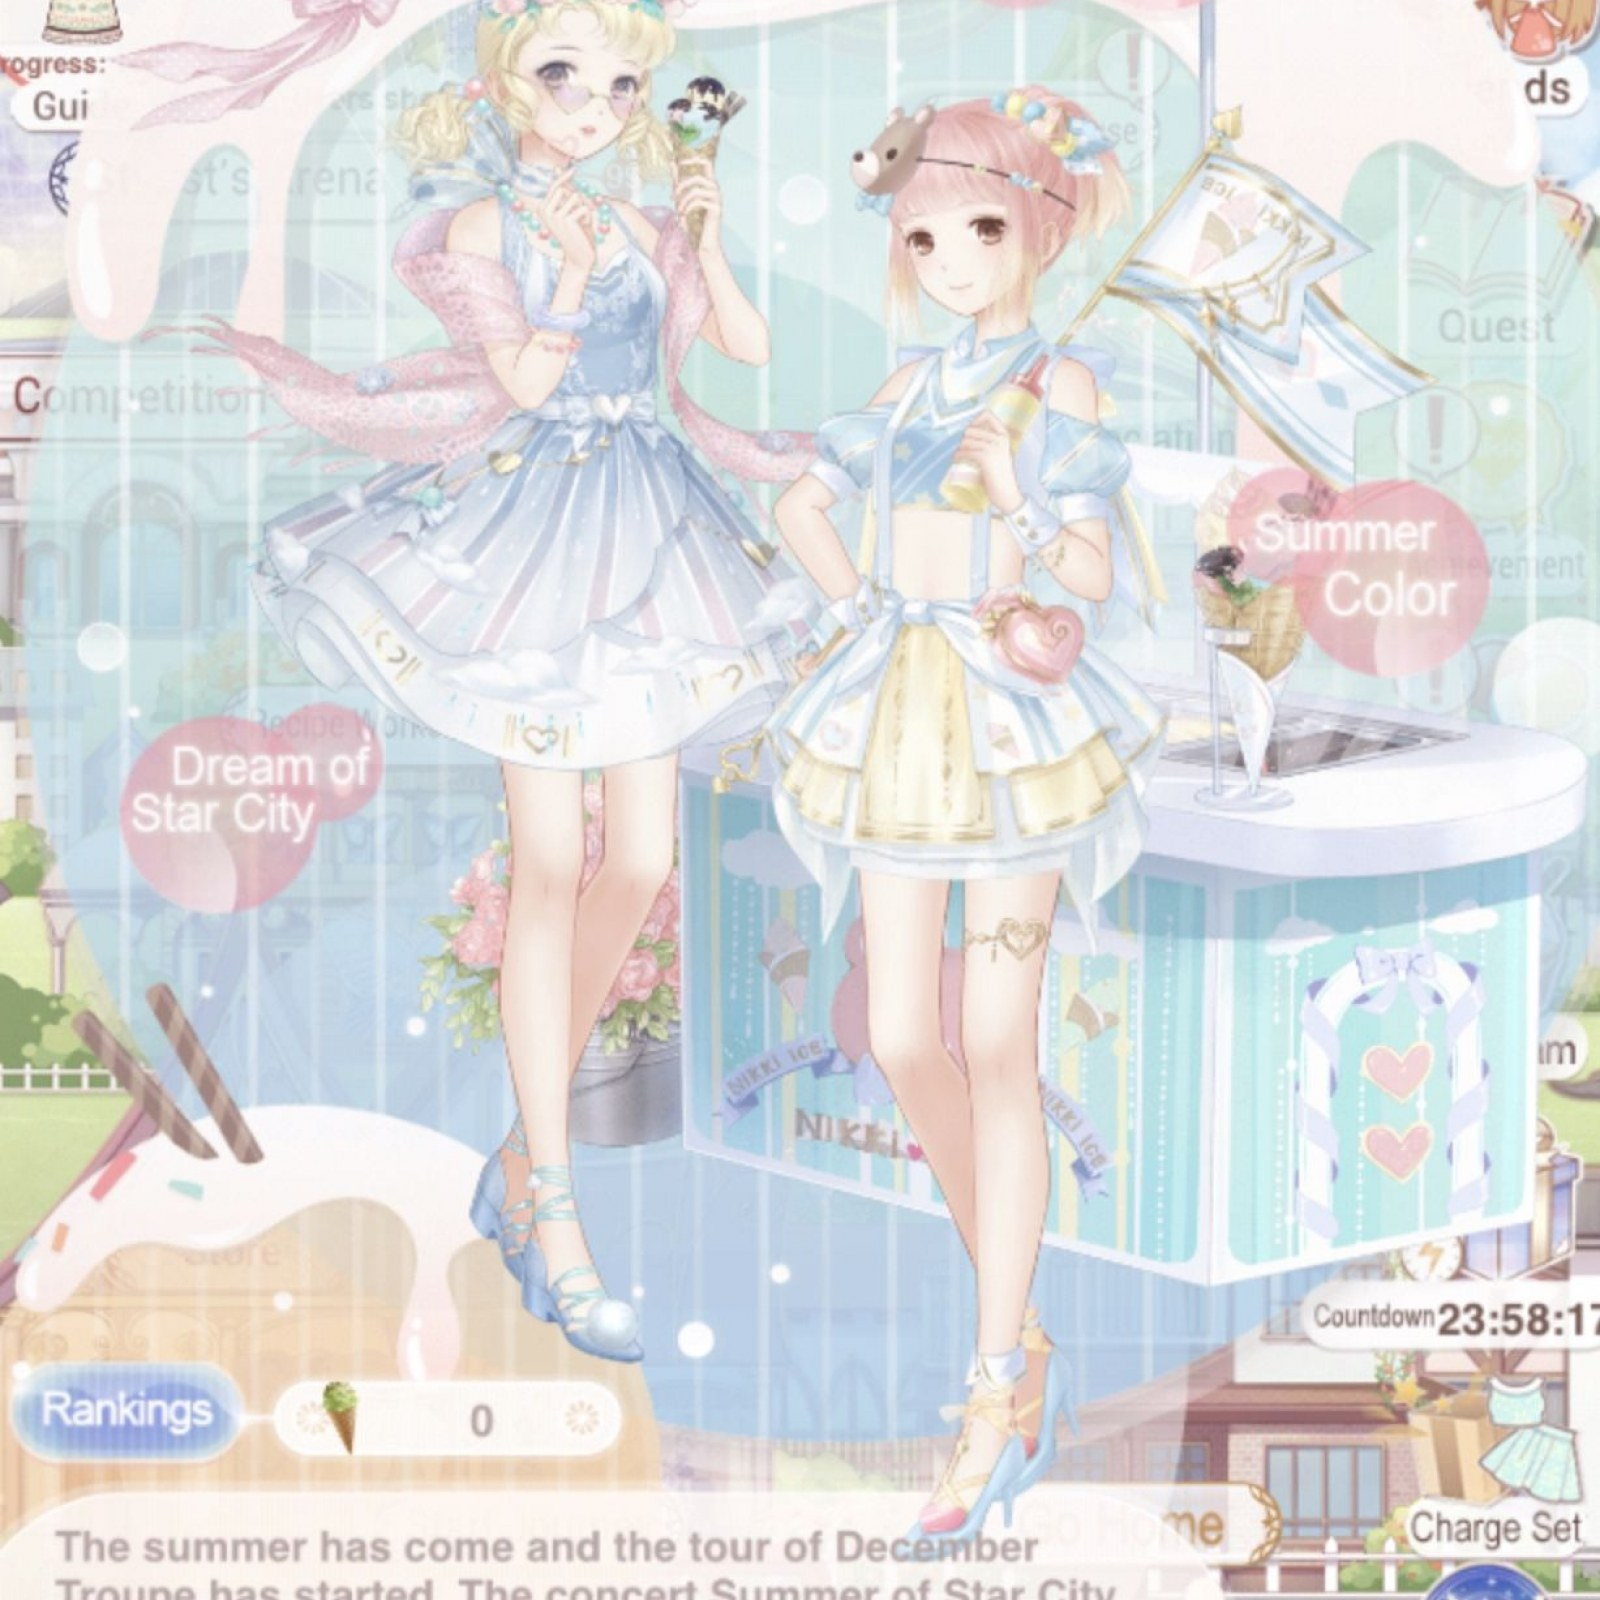 Love Nikki Christmas Reunion.Love Nikki Summer Color Event Guide Tips For Choosing The